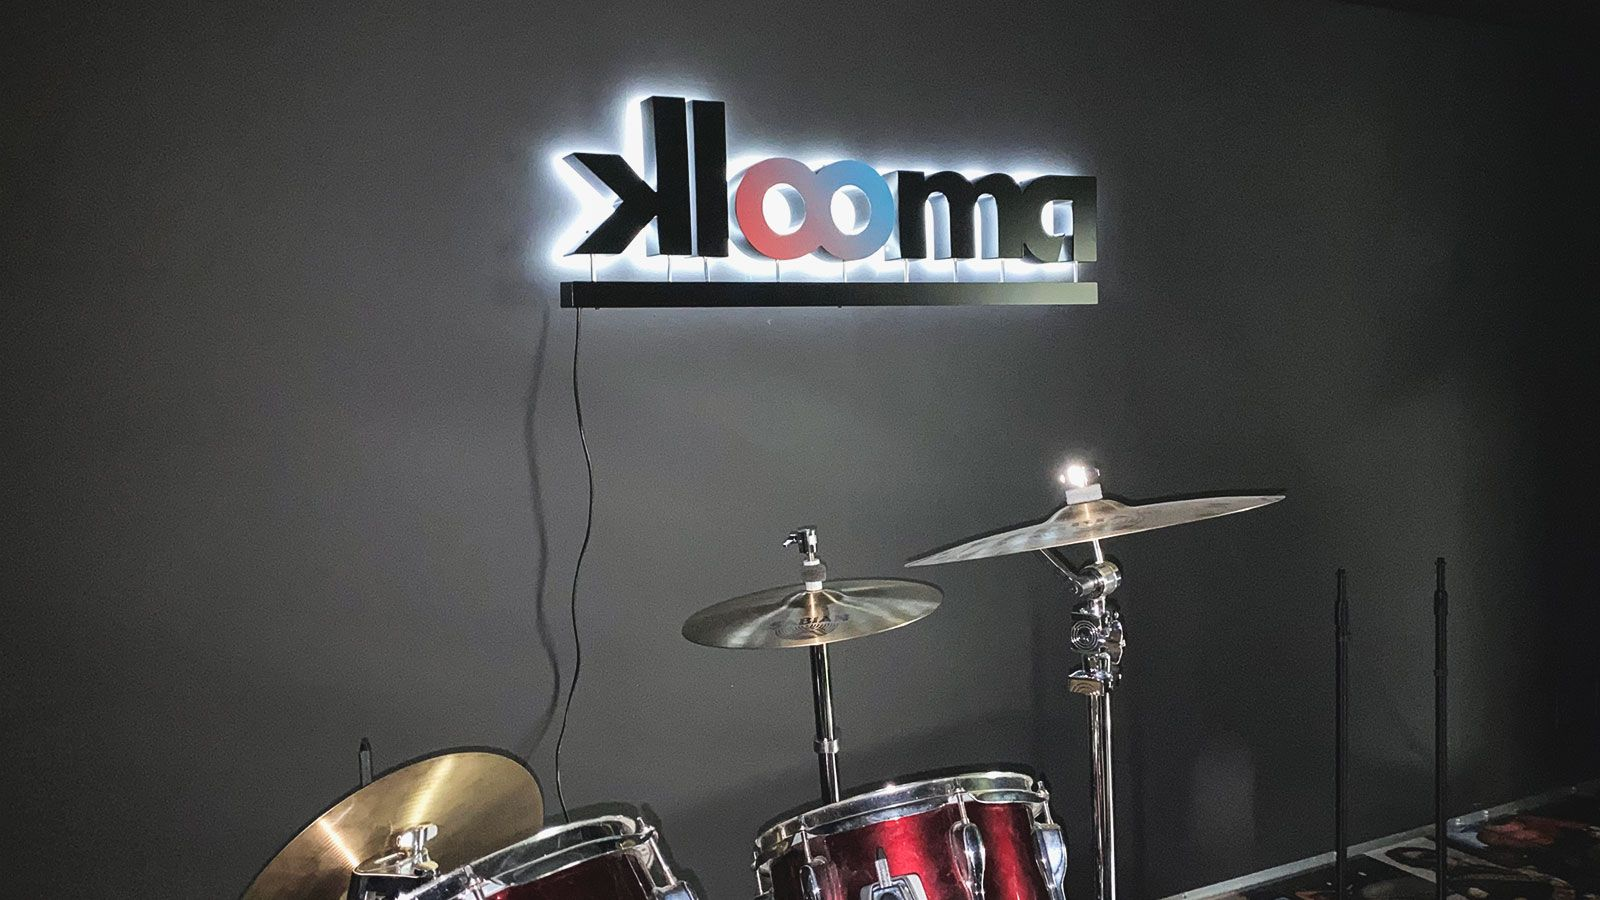 Klooma backlit channel letters